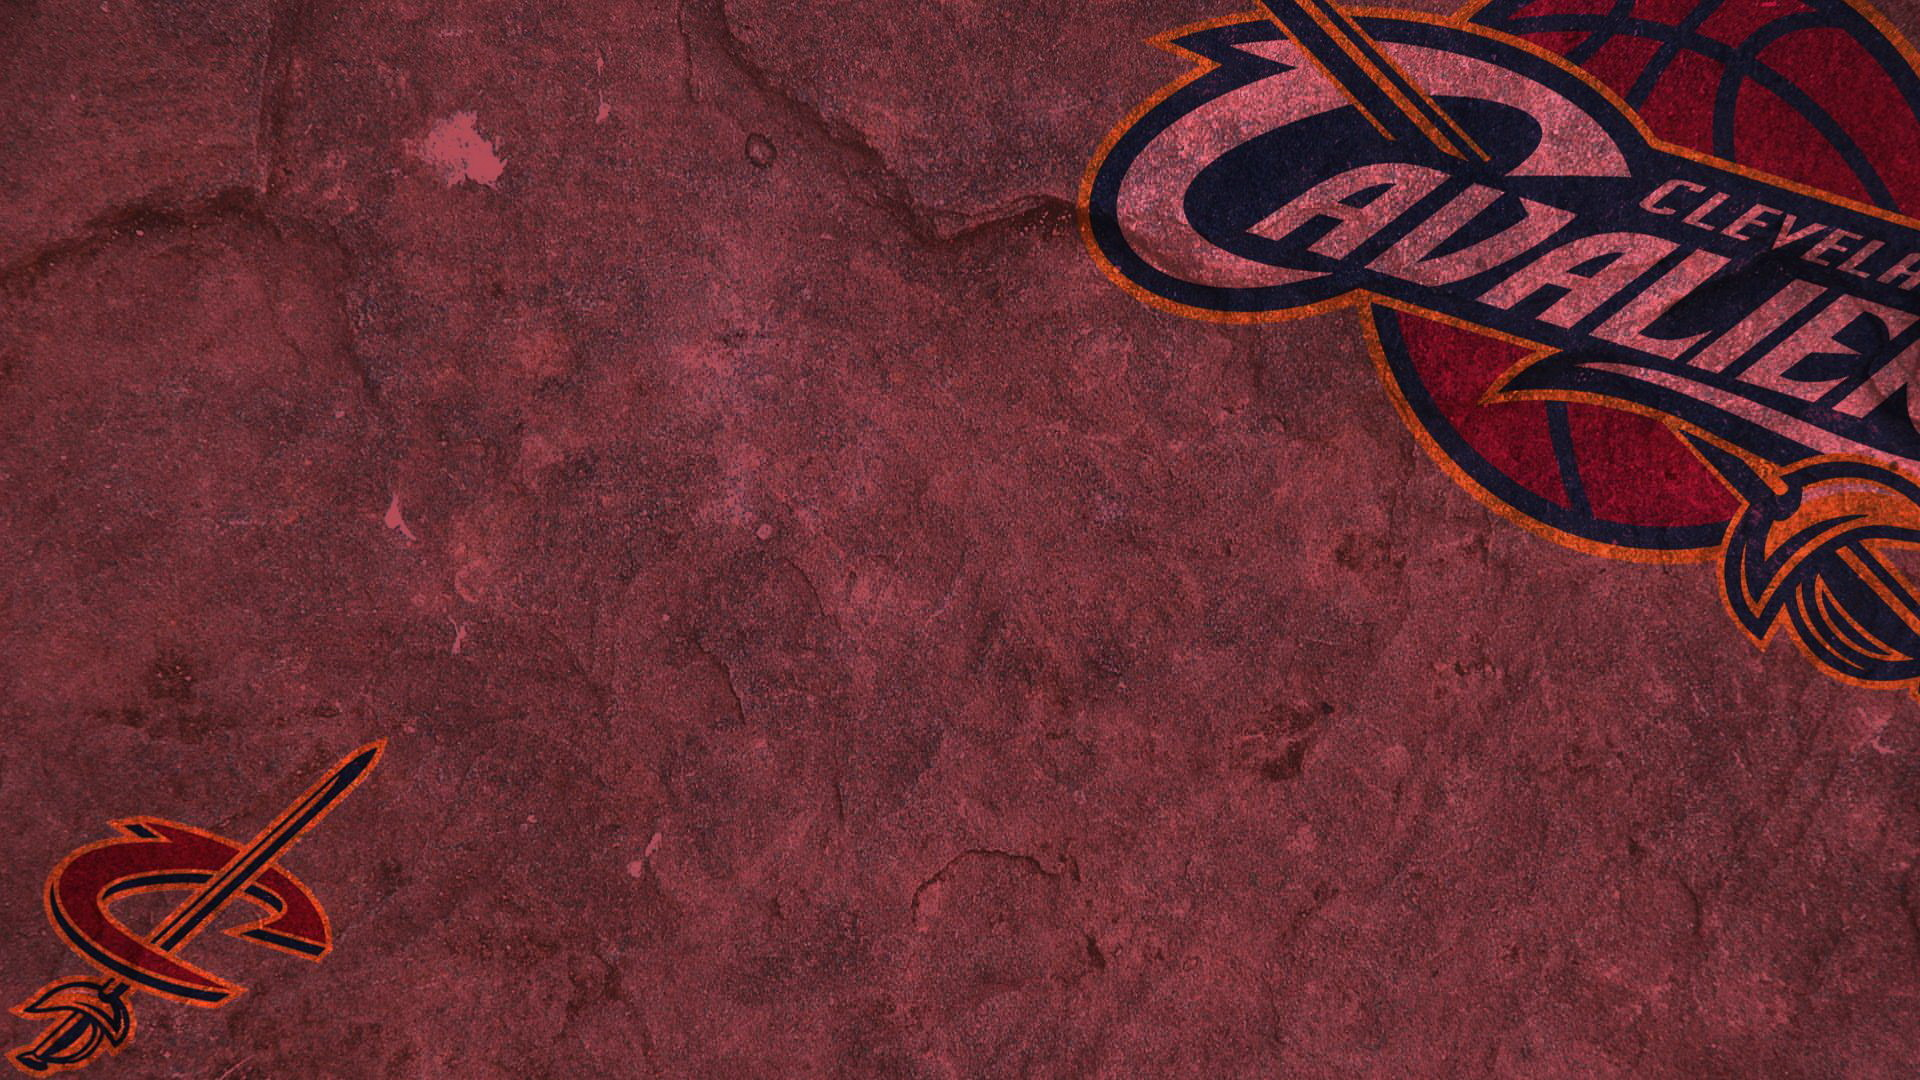 Cleveland cavaliers wallpapers 85 images - Cleveland cavaliers wallpaper ...